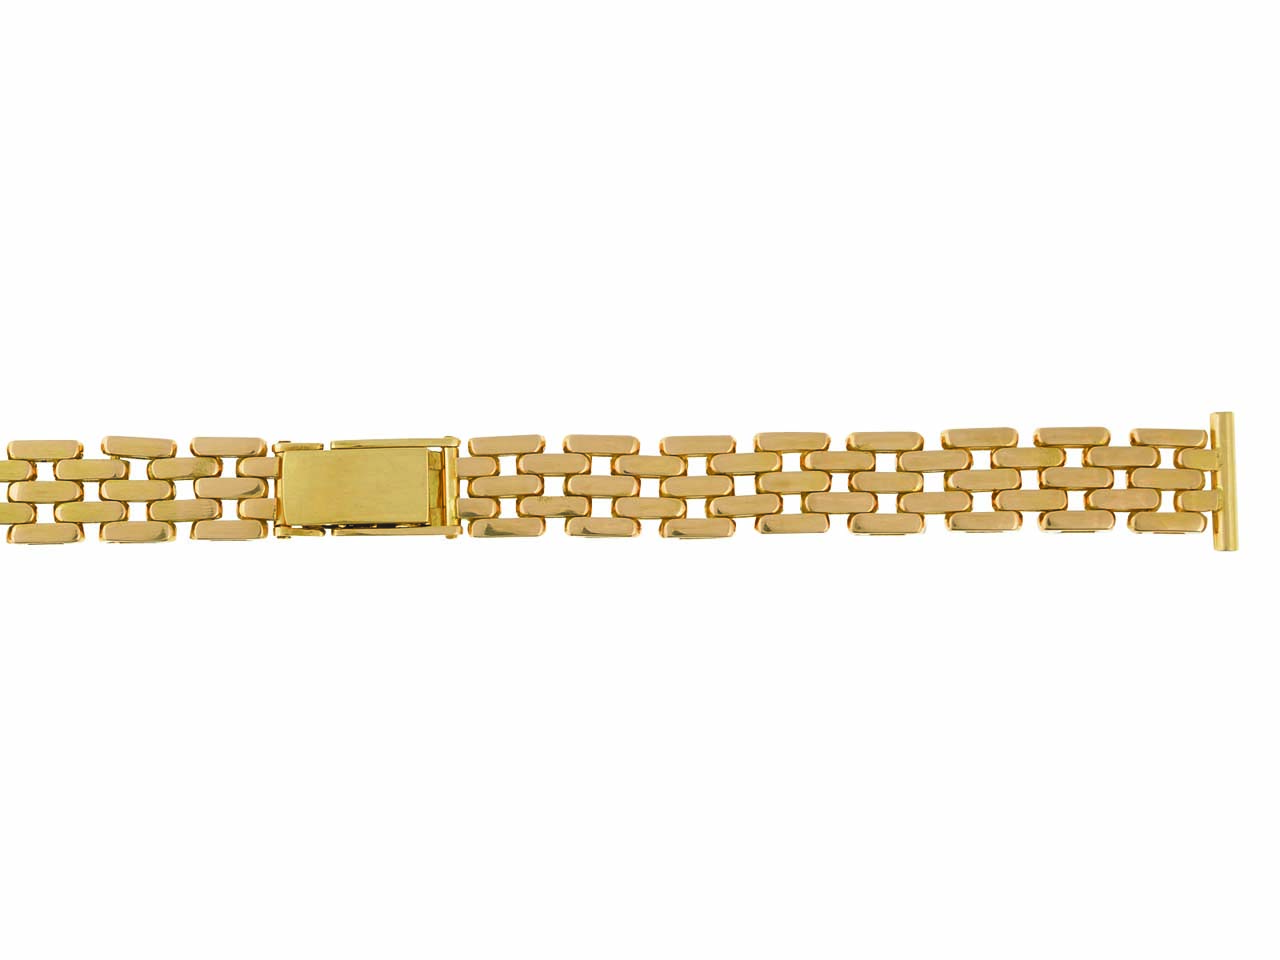 Bracelet montre grain de riz 12 mm, Or jaune 18k. Réf. 9044